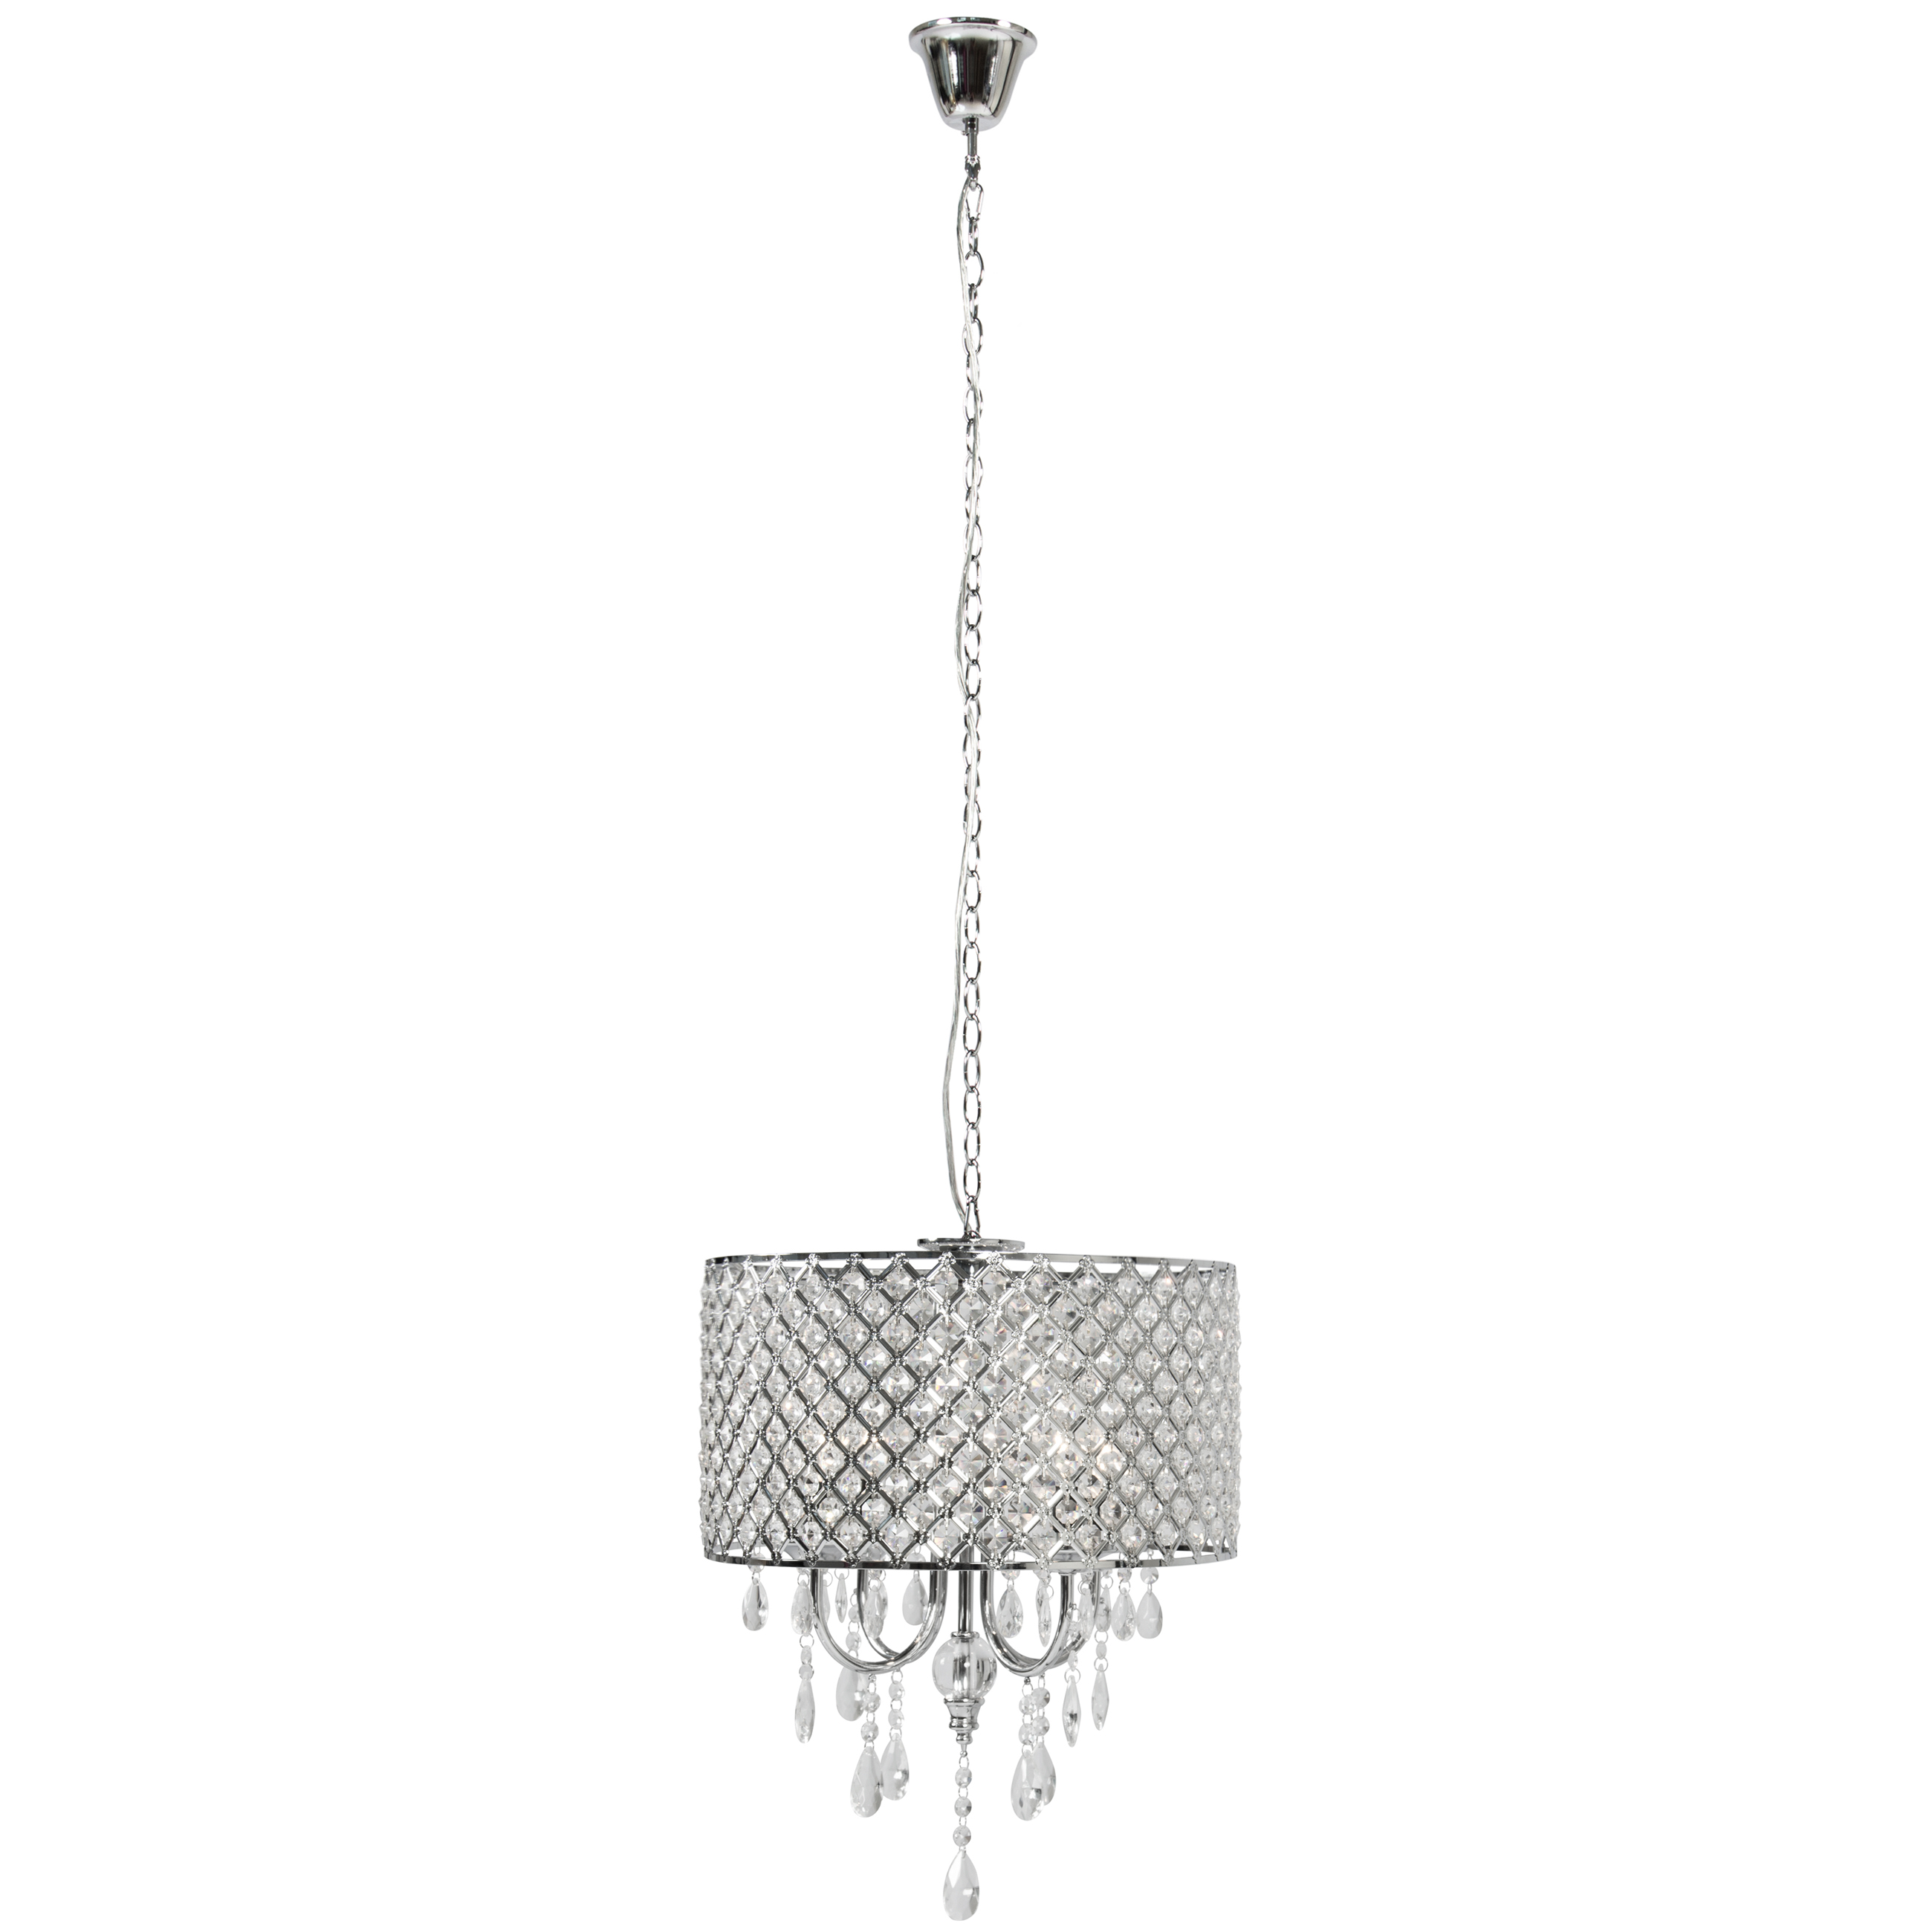 See More Hot 100 Lamps Light Fixtures